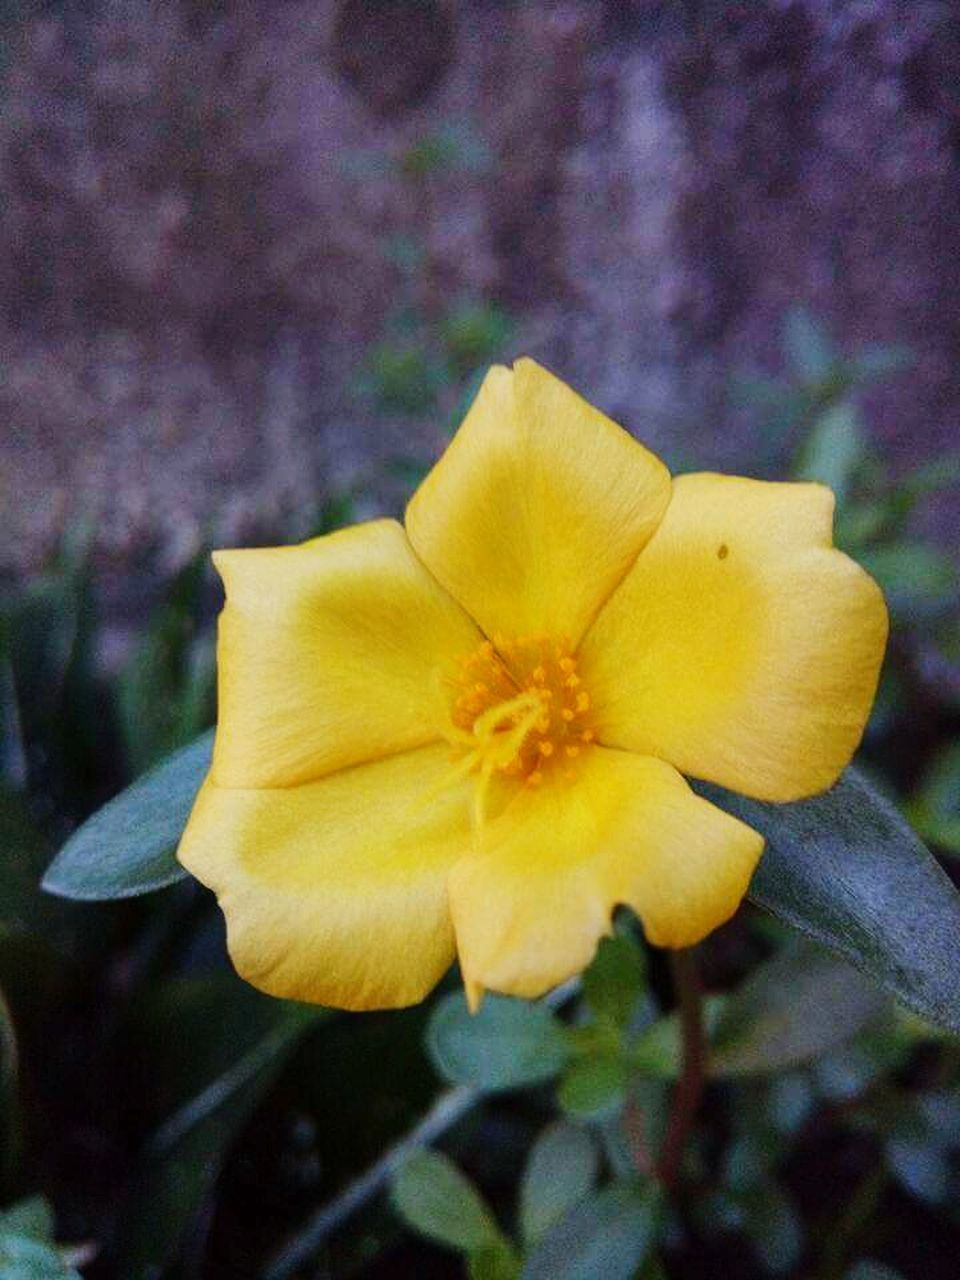 flower, fragility, petal, yellow, flower head, beauty in nature, nature, freshness, close-up, no people, growth, outdoors, blooming, day, focus on foreground, plant, springtime